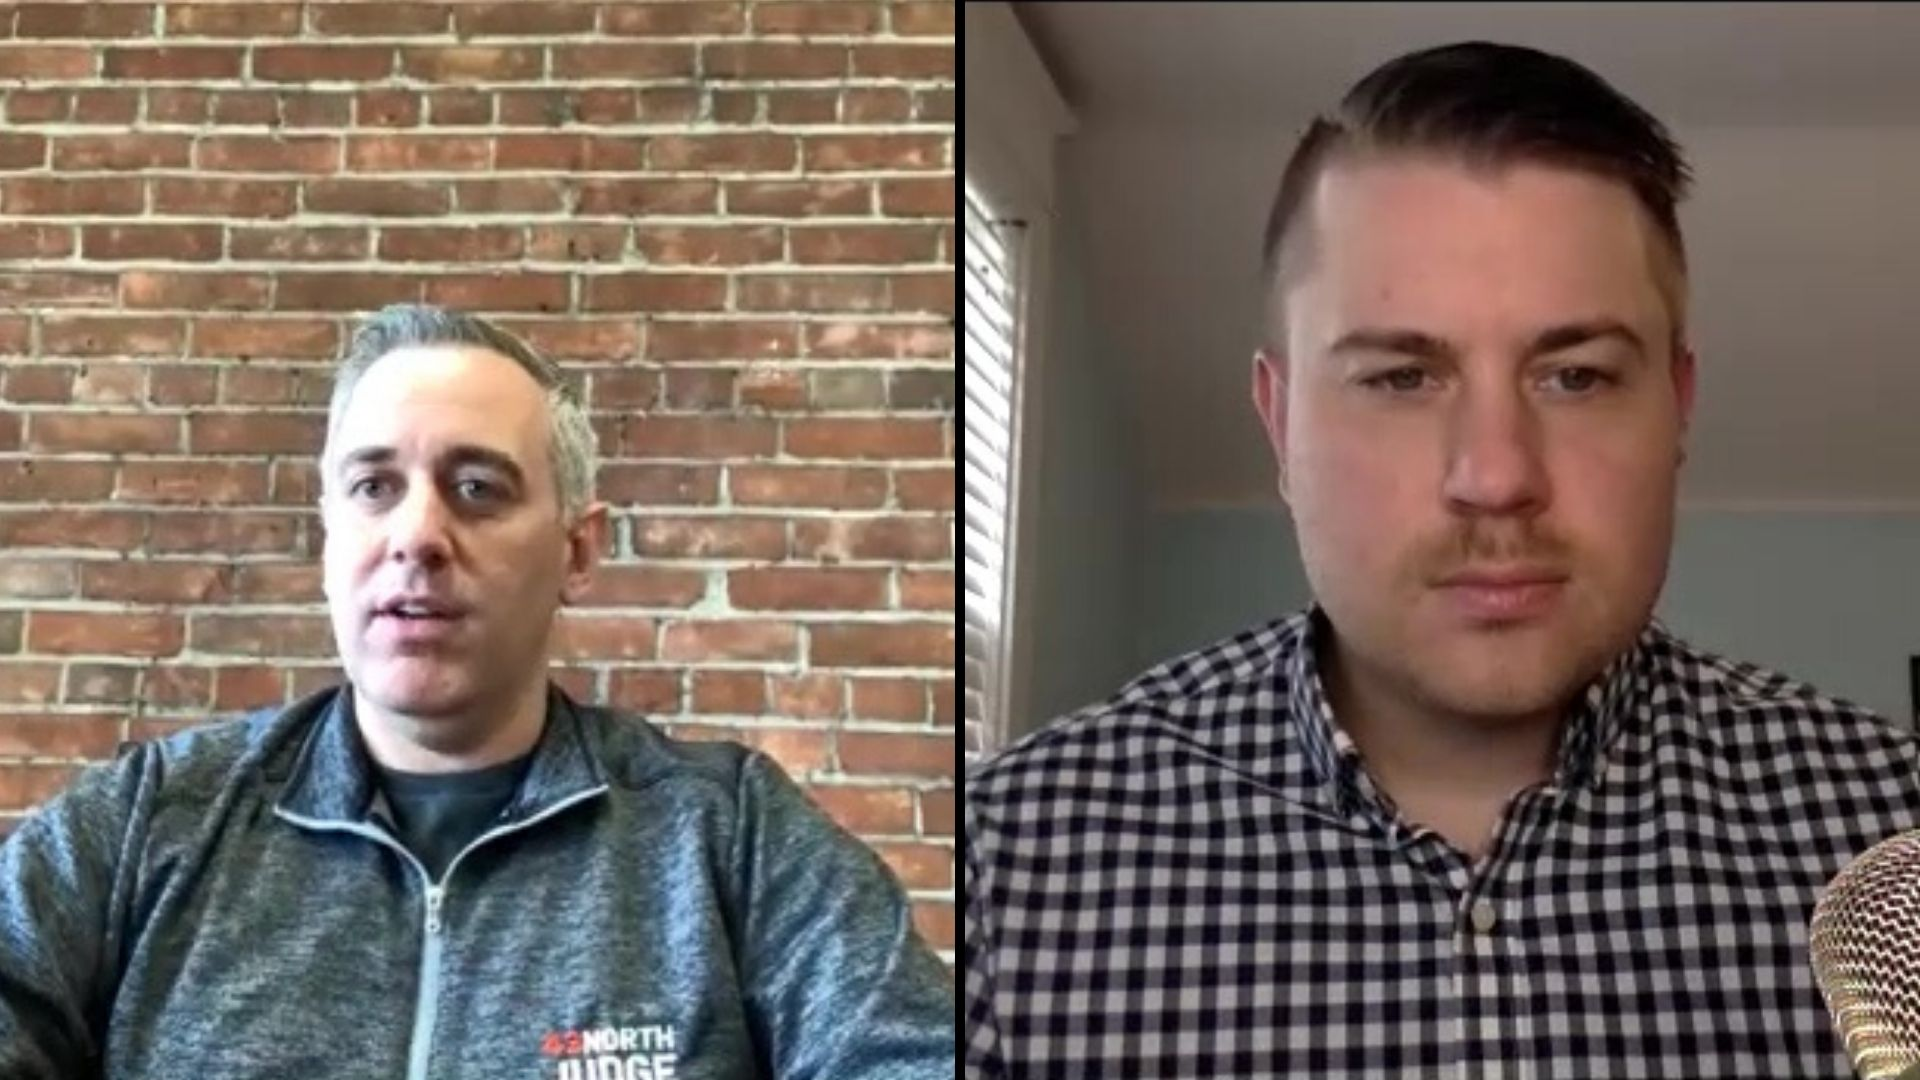 Kevin Kerl and Innovation, Change, Remote Work & Hiring